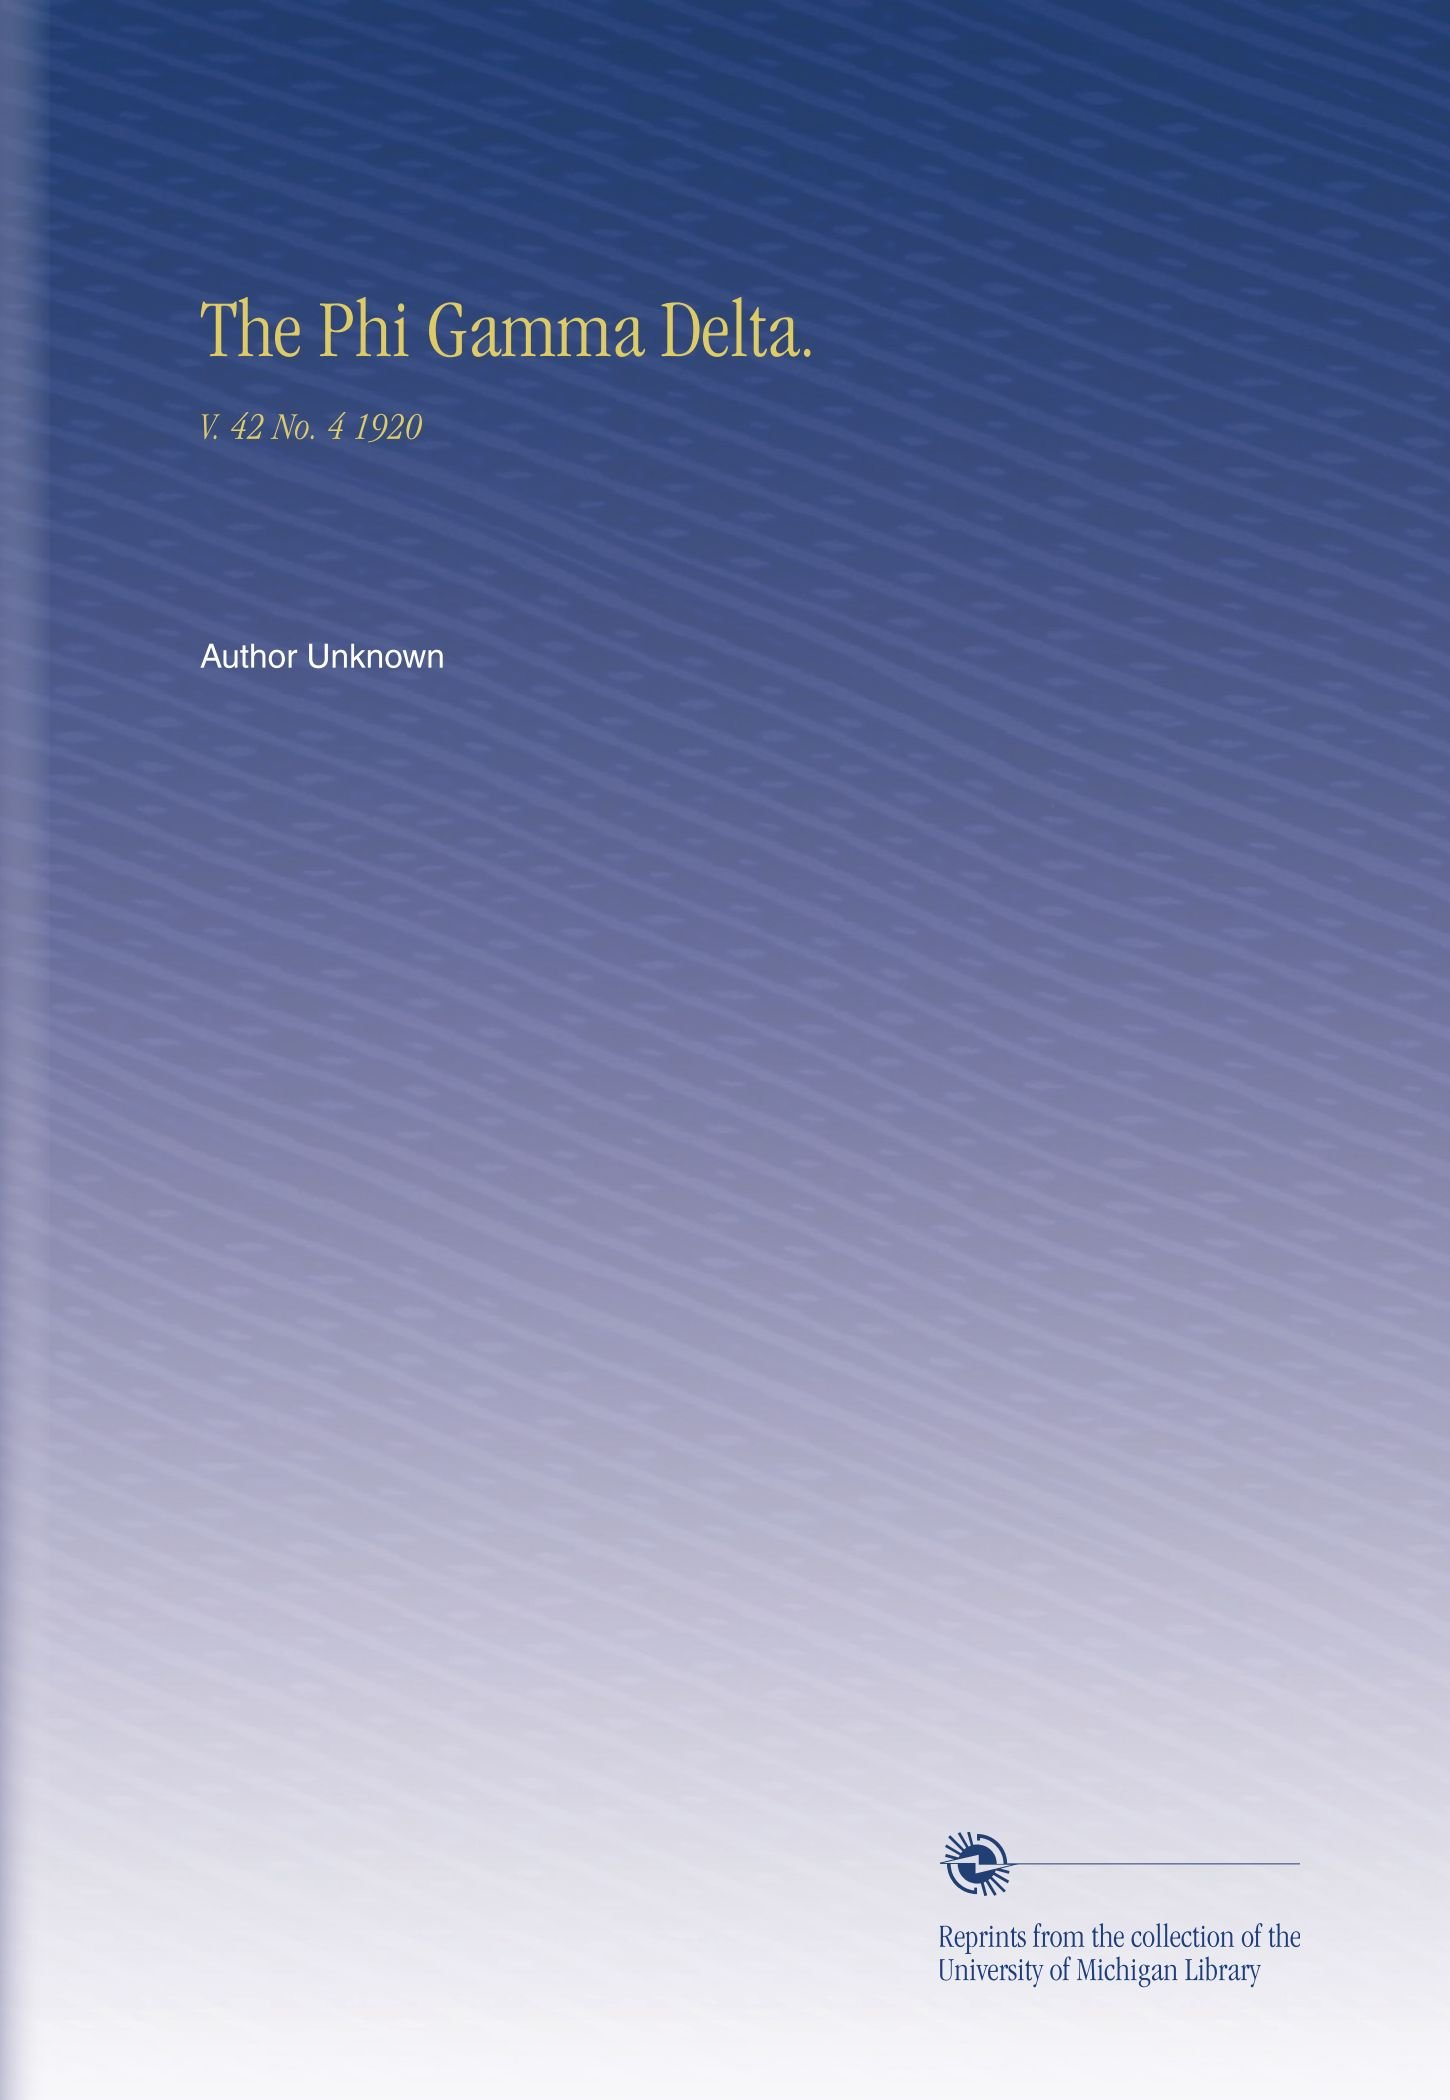 The Phi Gamma Delta.: V. 42 No. 4 1920 ebook